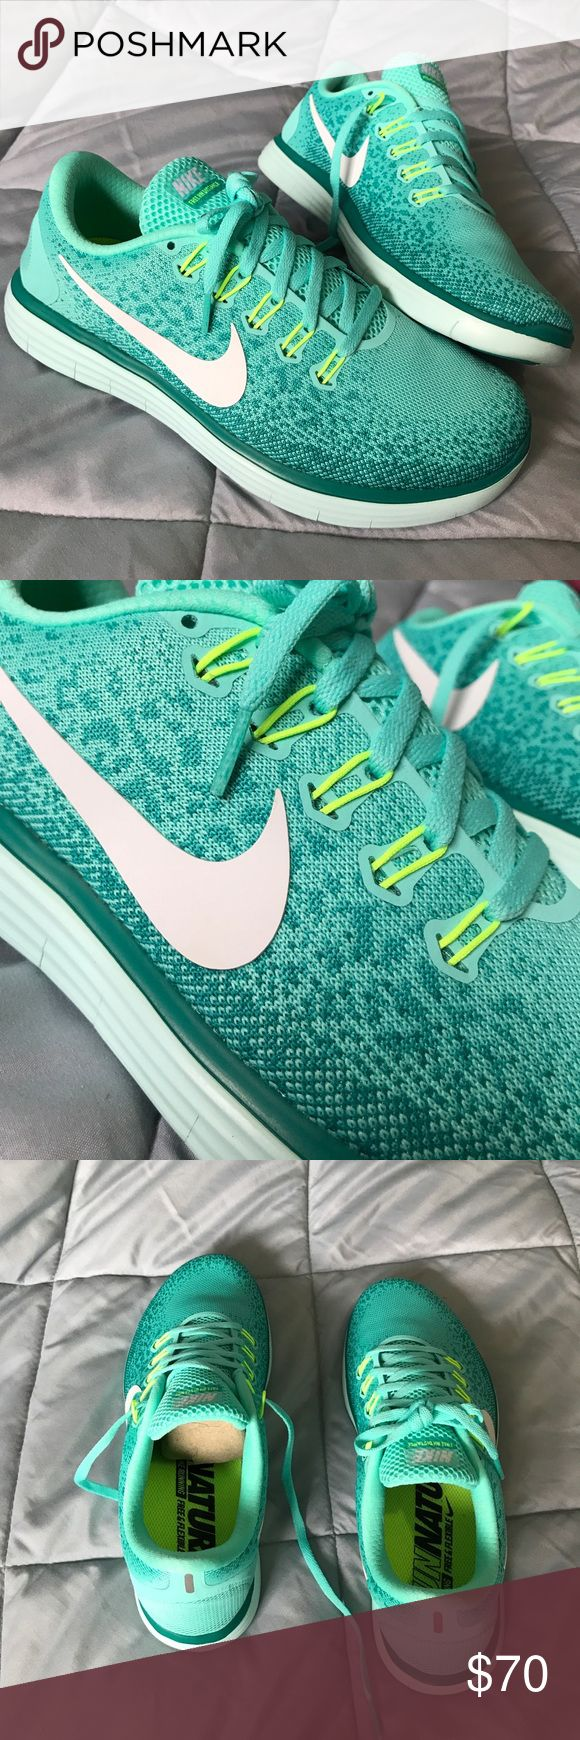 ♂️Nike Free RN Distance♂️ Size 9, new w/o tags (print still on Sole) worn for 15 men's mutes, like Brand new!! Different shades of teal, white, & neon green/yellow!! Very nice, & extremely comfortable!!! ♂️♀️️♀️ Nike Shoes